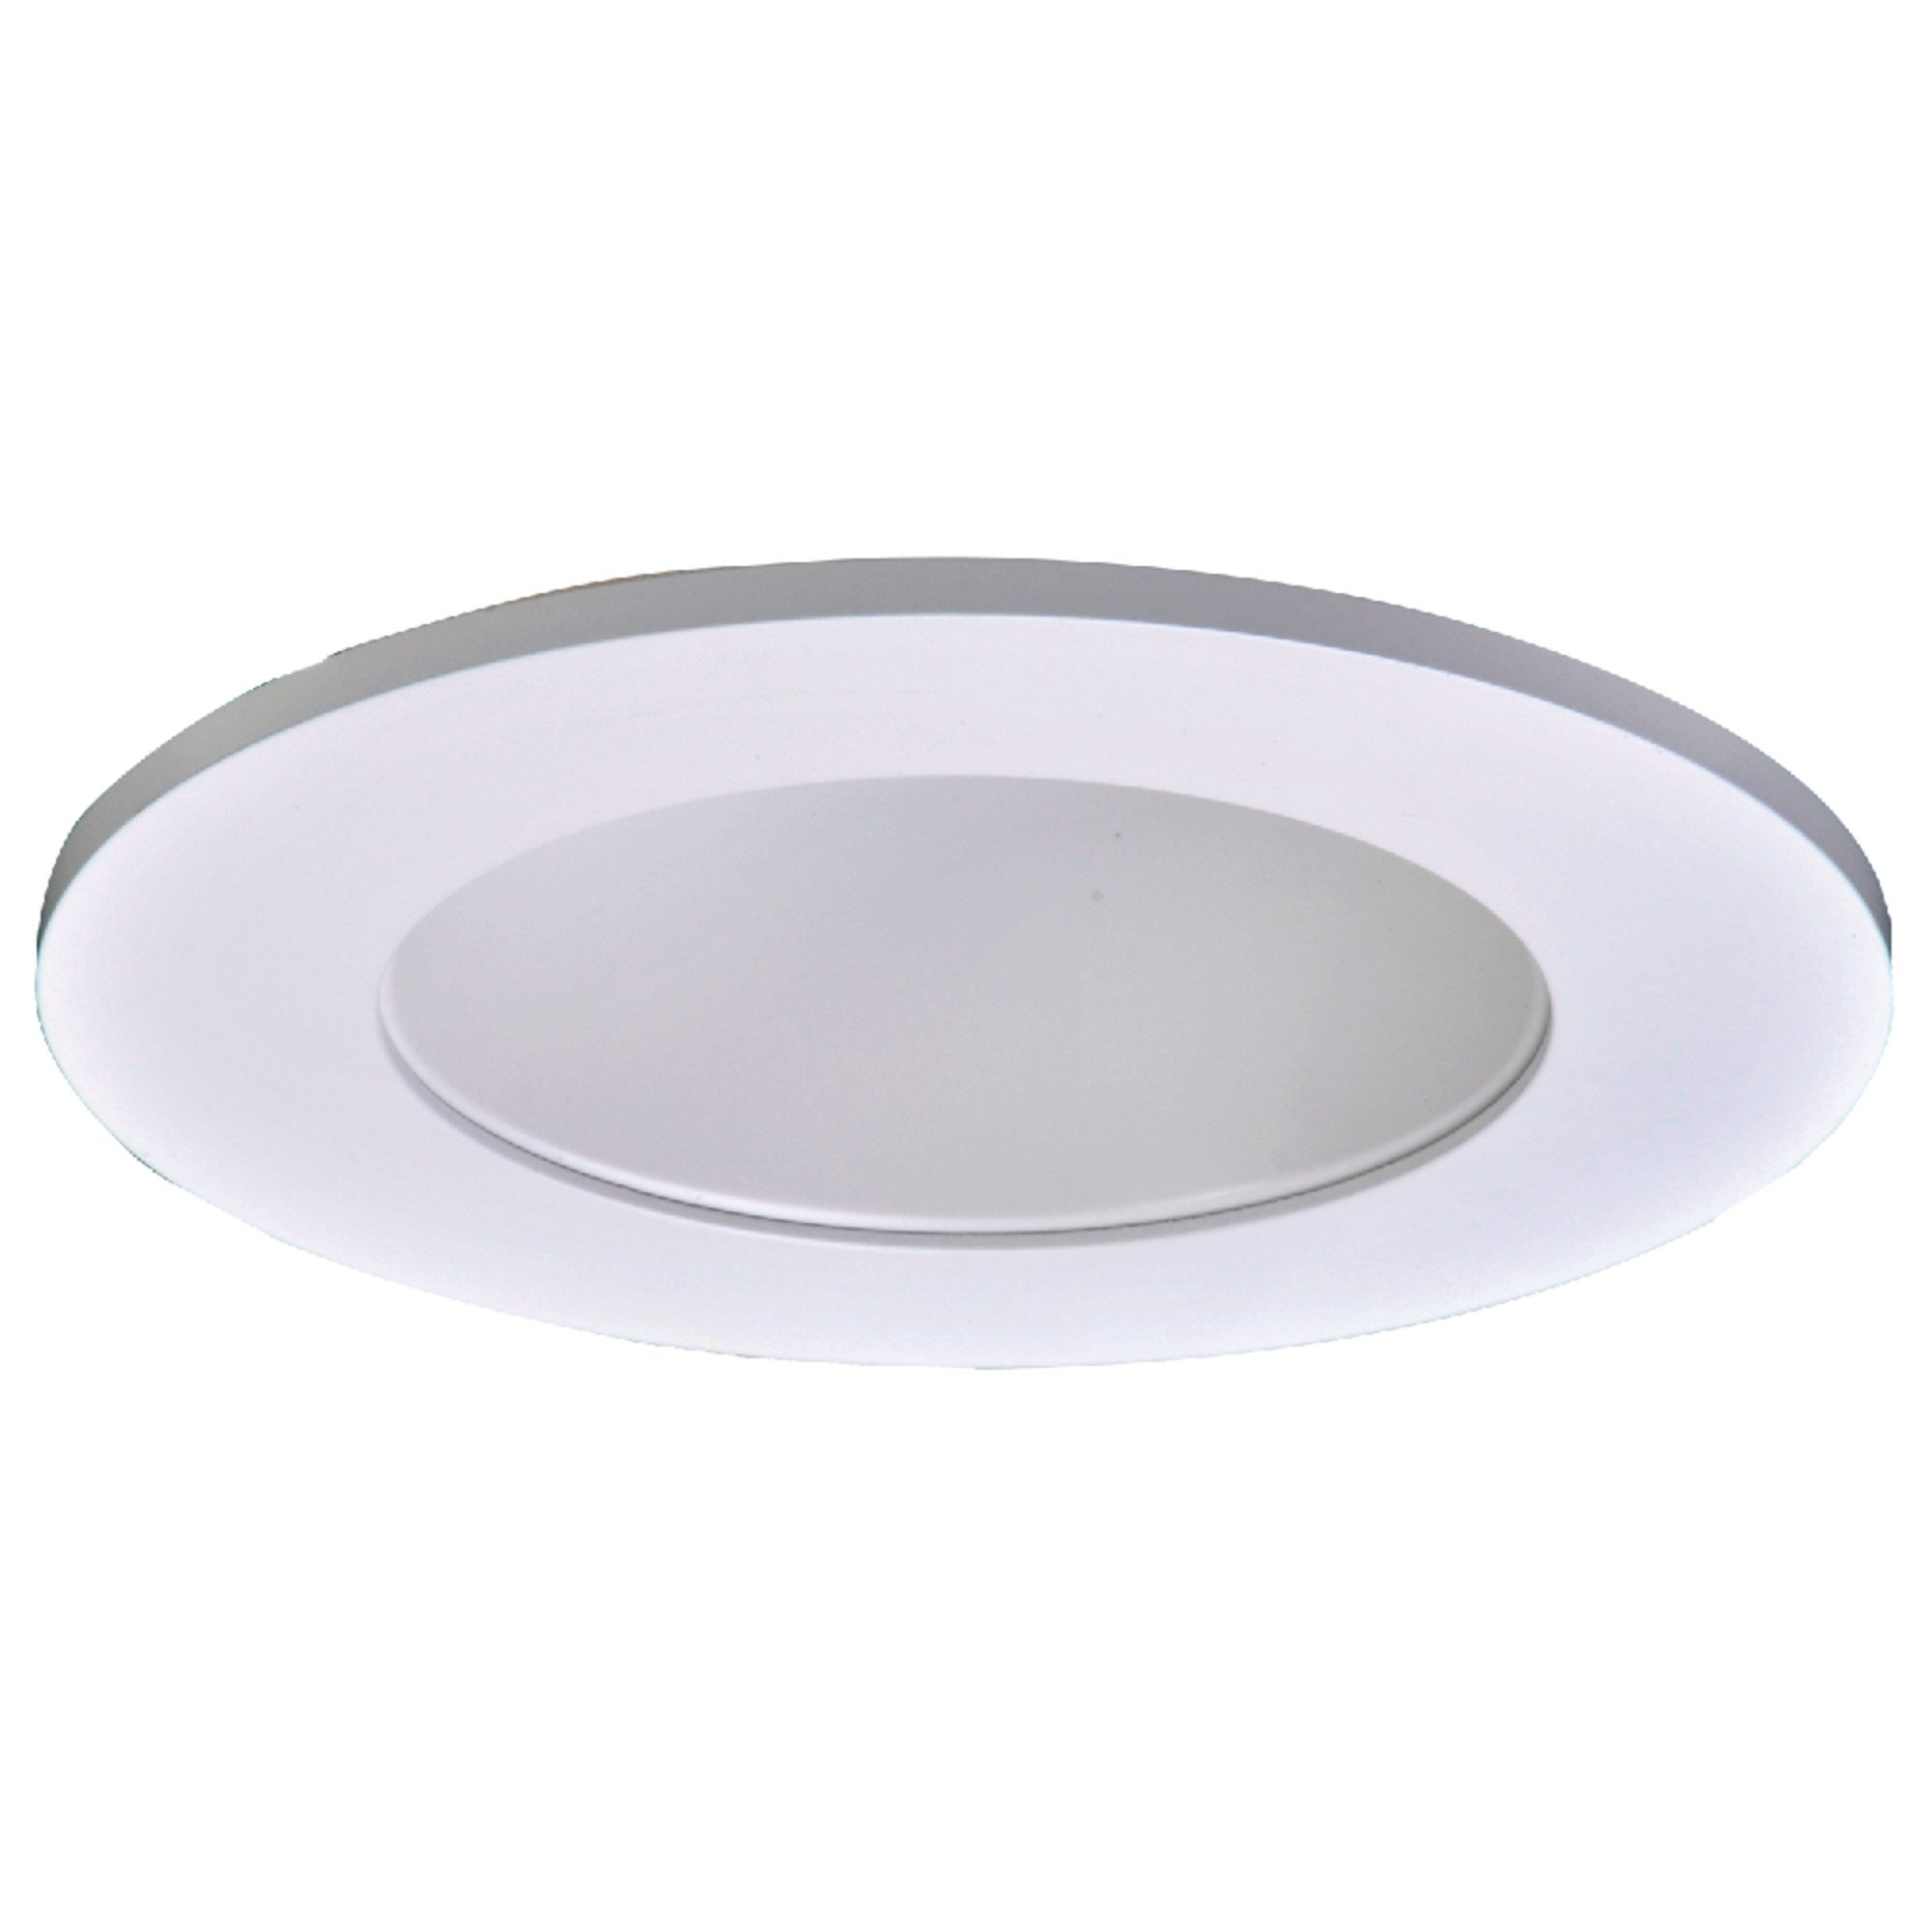 Halo TL410WH LED Trim, Frost Dome Polymer Lens, White Reflector, Matte White Ring, Shower Rated, 4''